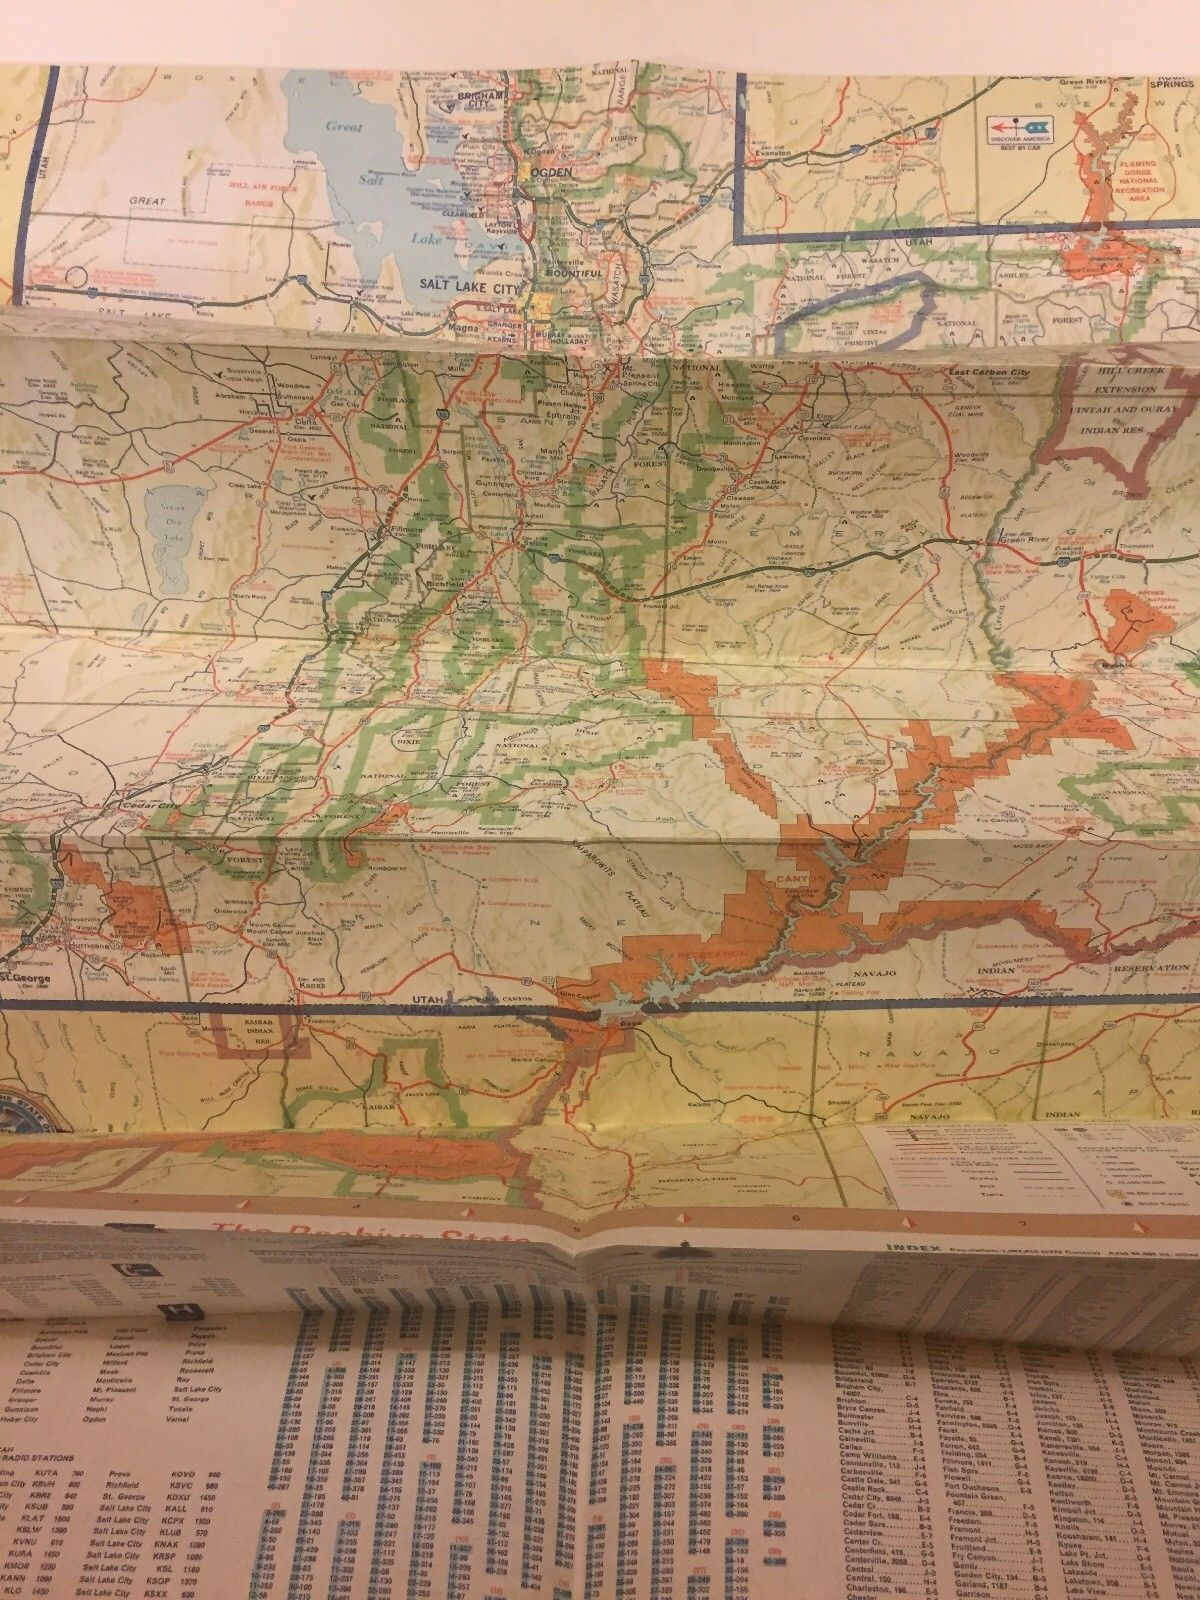 Utah Official Highway Map State Road Commission 1974 MINT FREE SHIPPING